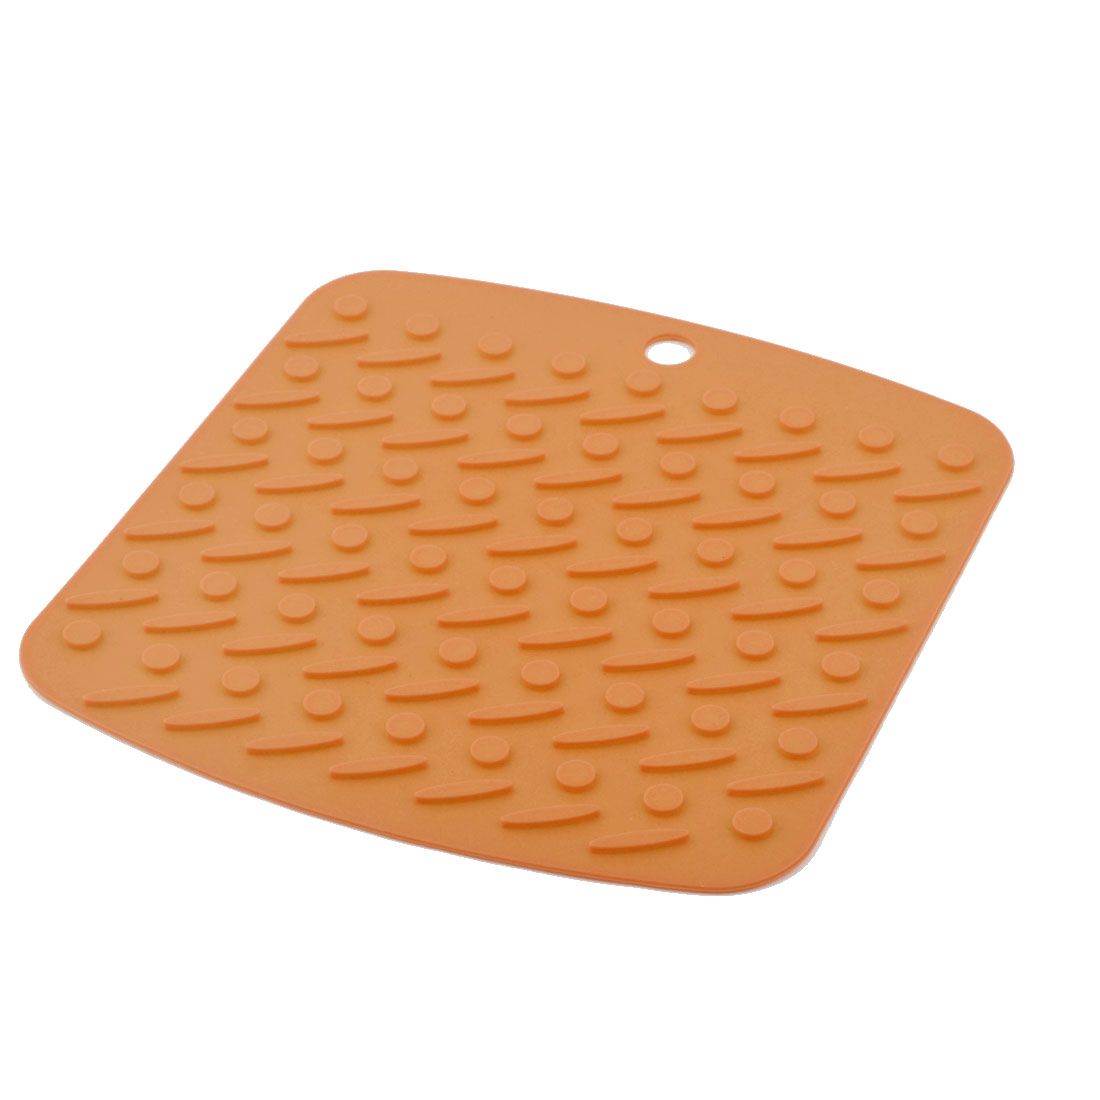 Silicone Nonslip Table Heat Resistant Mat Bowl Cup Cushion Placemat Pad Orange